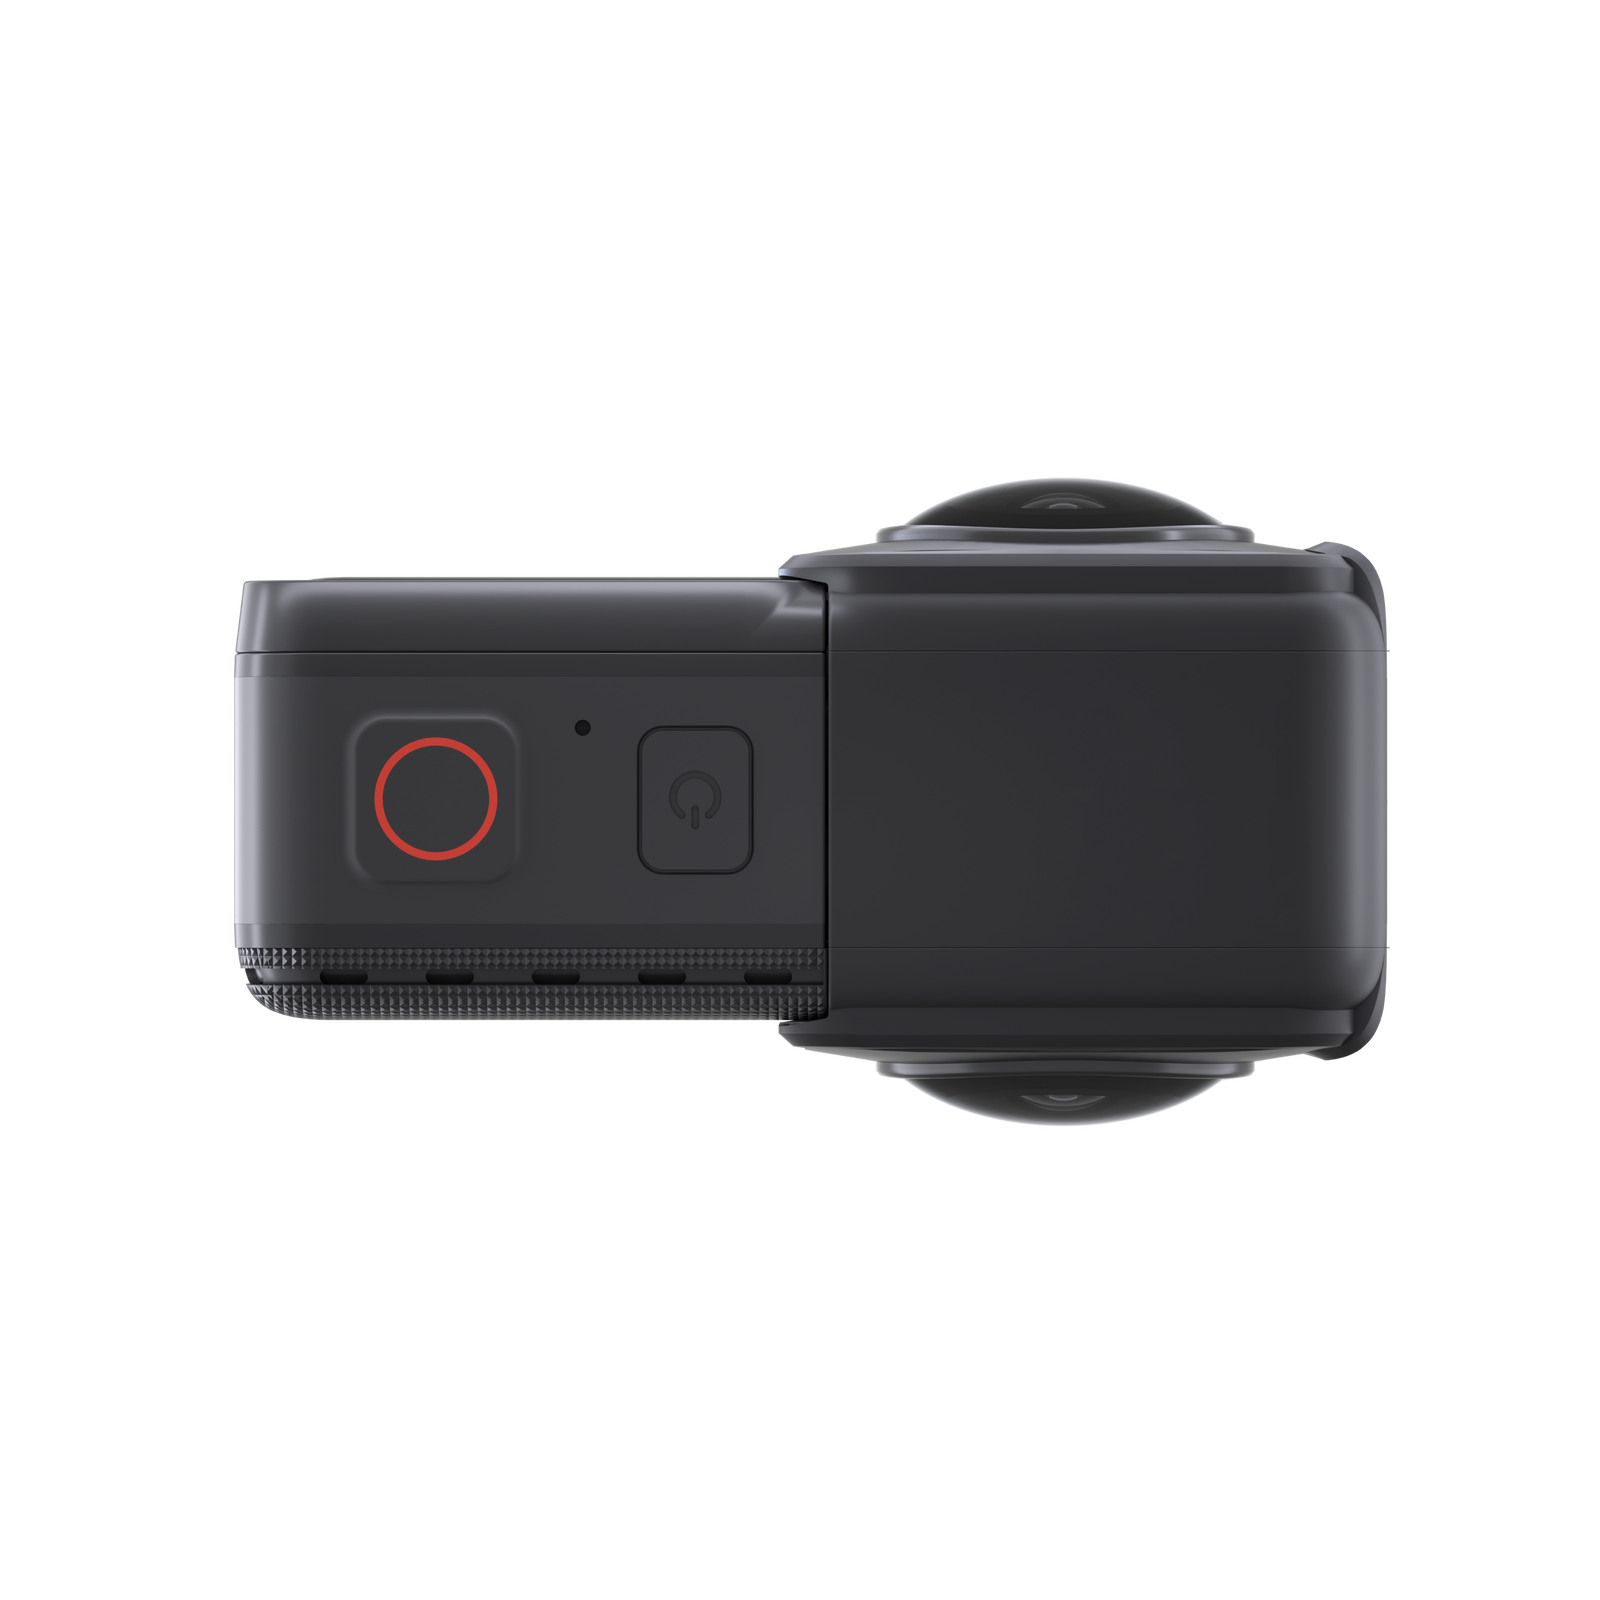 Insta360-ONE R - top view of 360 camera mounted